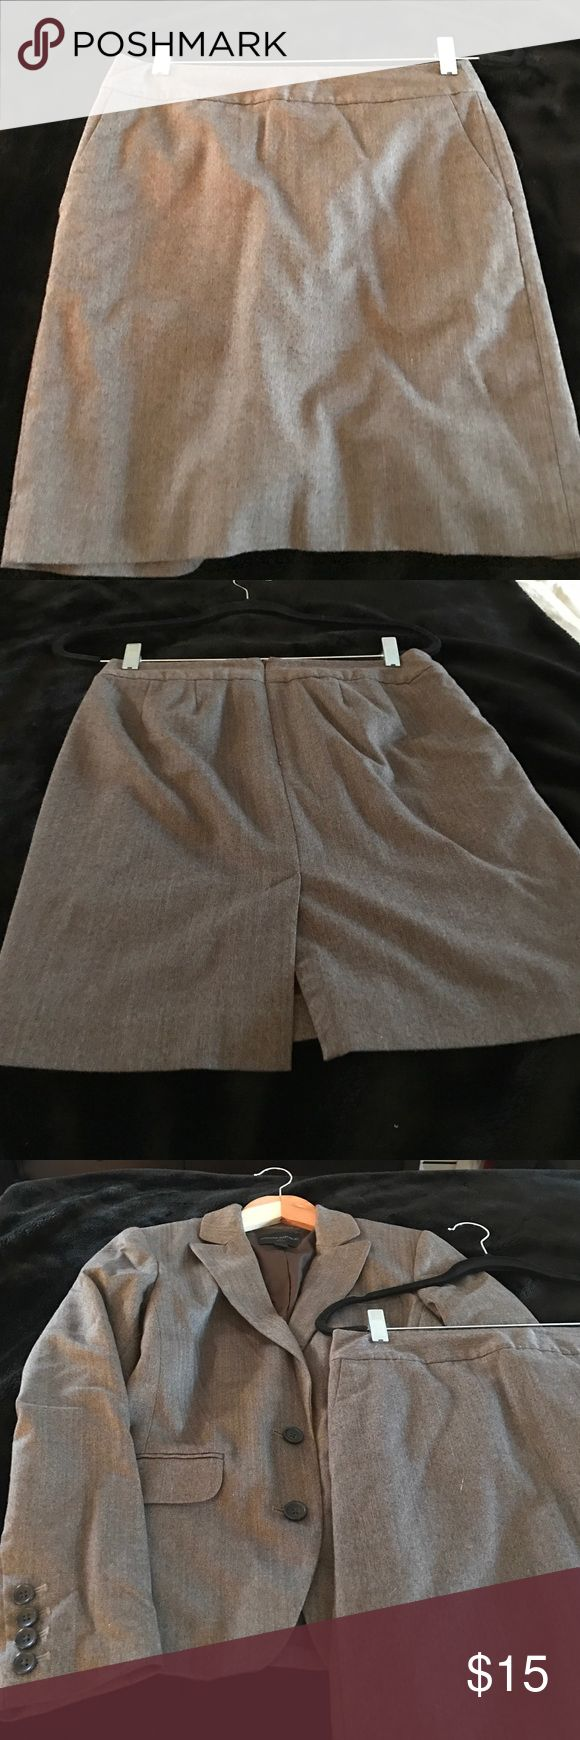 Banana Republic petite suit skirt Banana Republic petite suit skirt. Zipper in perfect condition. Will include jacket for $10 if purchased at full price. Banana Republic Skirts